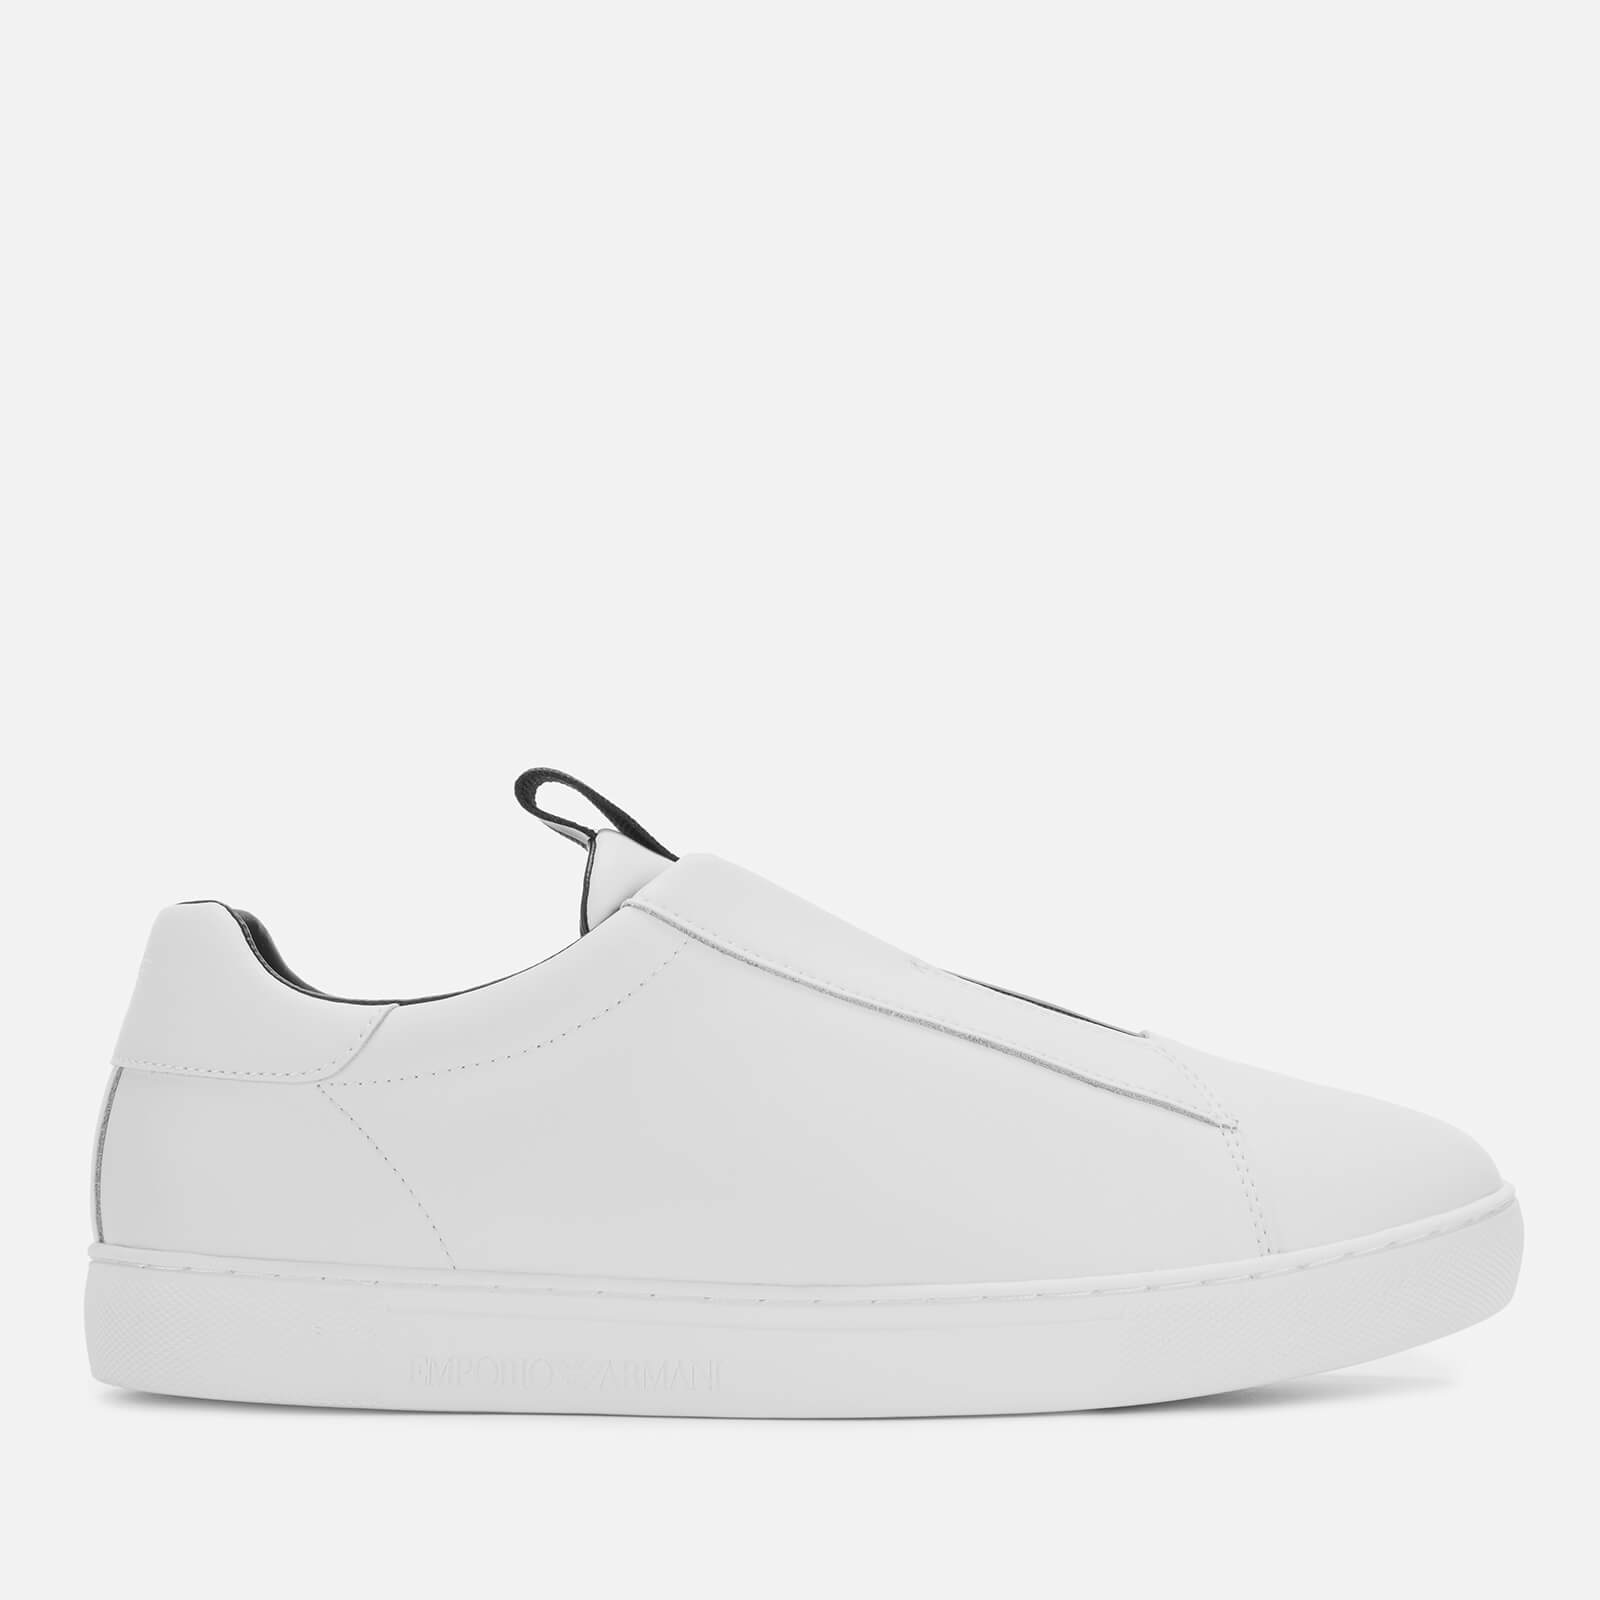 a3678425 Emporio Armani Men's Stan Leather Slip-On Trainers - White/Black/White